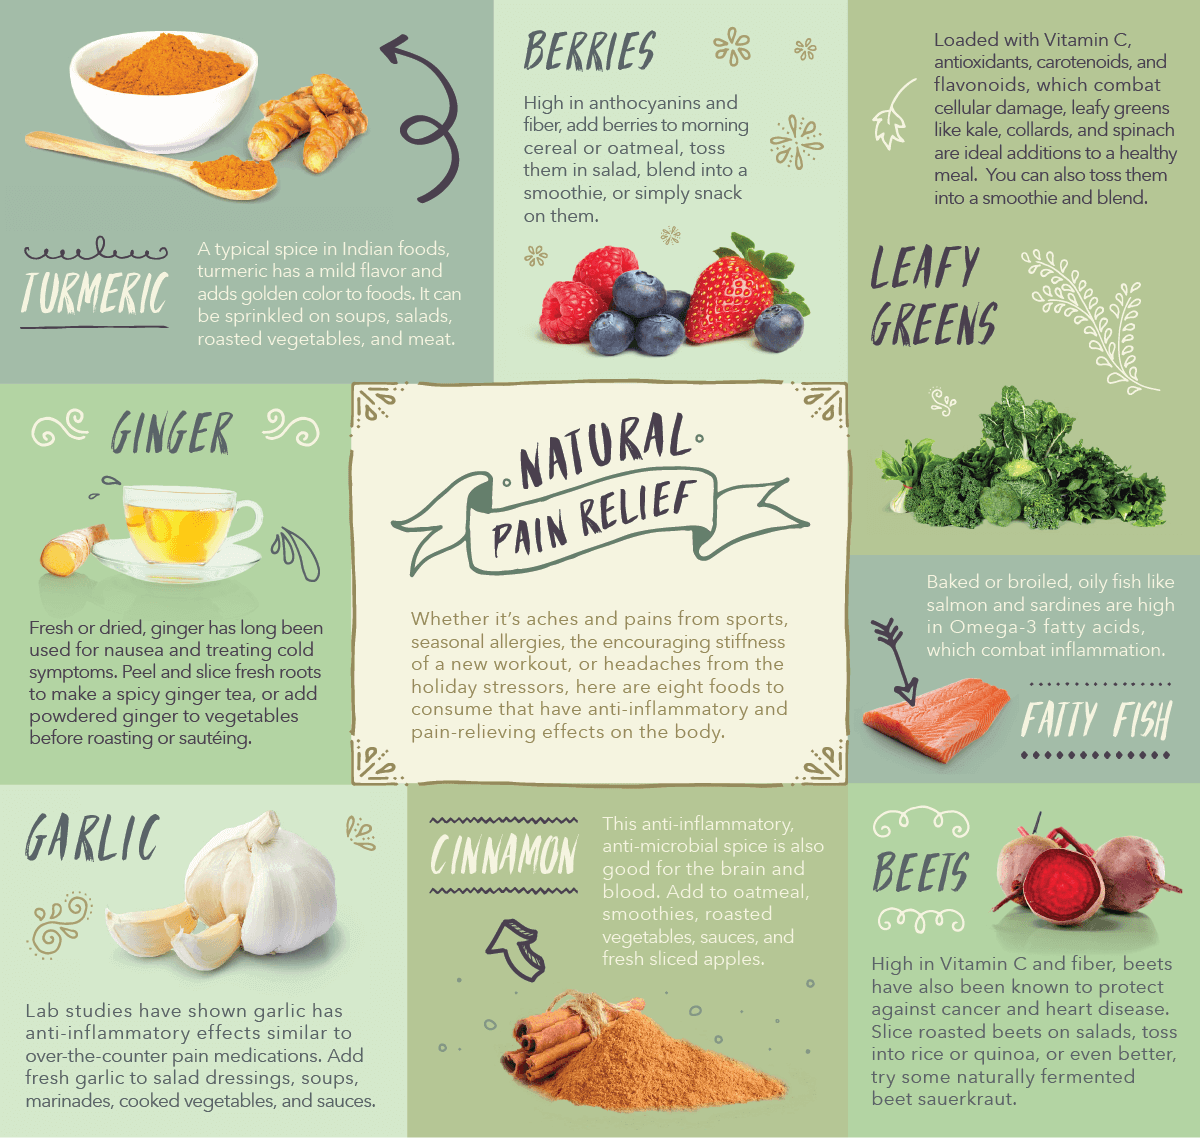 Natural Pain Relief: An Infographic | Skyterra Wellness